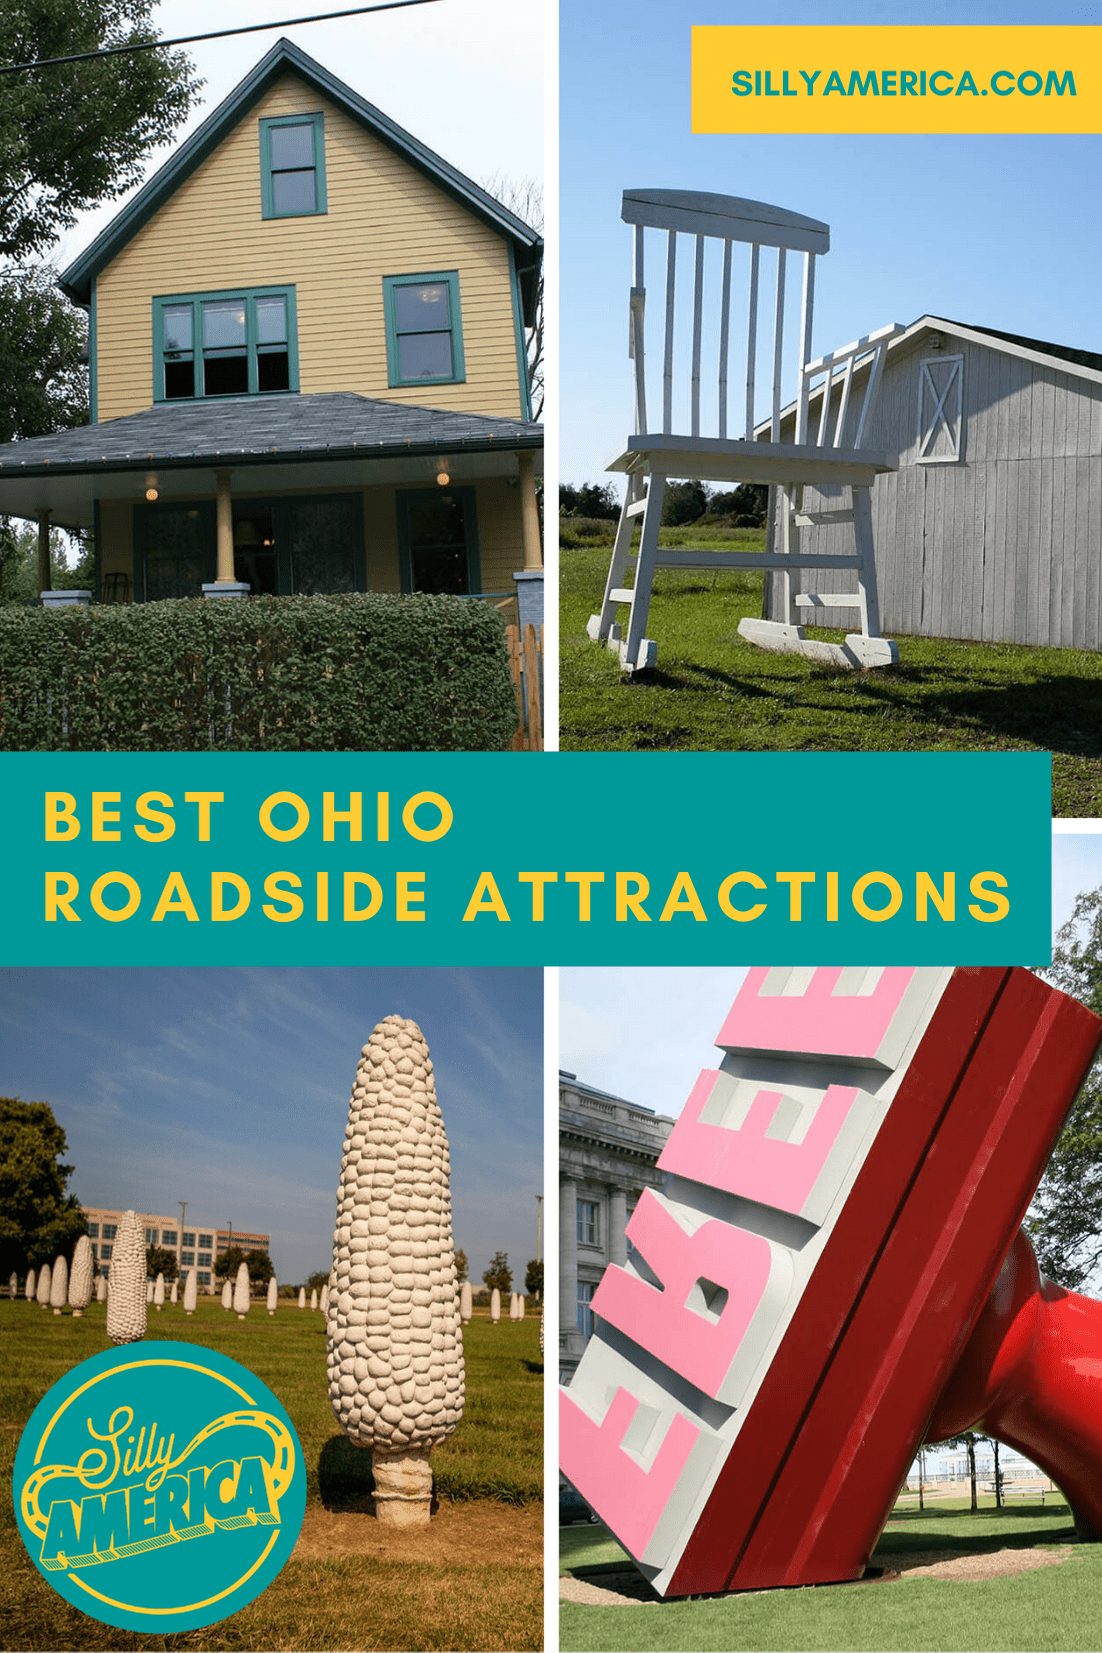 The best Ohio roadside attractions to visit on an Ohio road trip or weekend getaway. Add these roadside oddities and road trip stops to your bucket list and visit these roadside attractions in Ohio on your next travel adventure.    #OhioRoadsideAttractions #OhioRoadsideAttraction #RoadsideAttractions #RoadsideAttraction #RoadTrip #OhioRoadTrip #OhioRoadTripDestinations #OhioRoadTripIdeas #OhioRoadTripWithKids #OhioRoadTripBucketLists #OhioBucketList #OhioRoadTripIdeas #OhioRoadTripMap